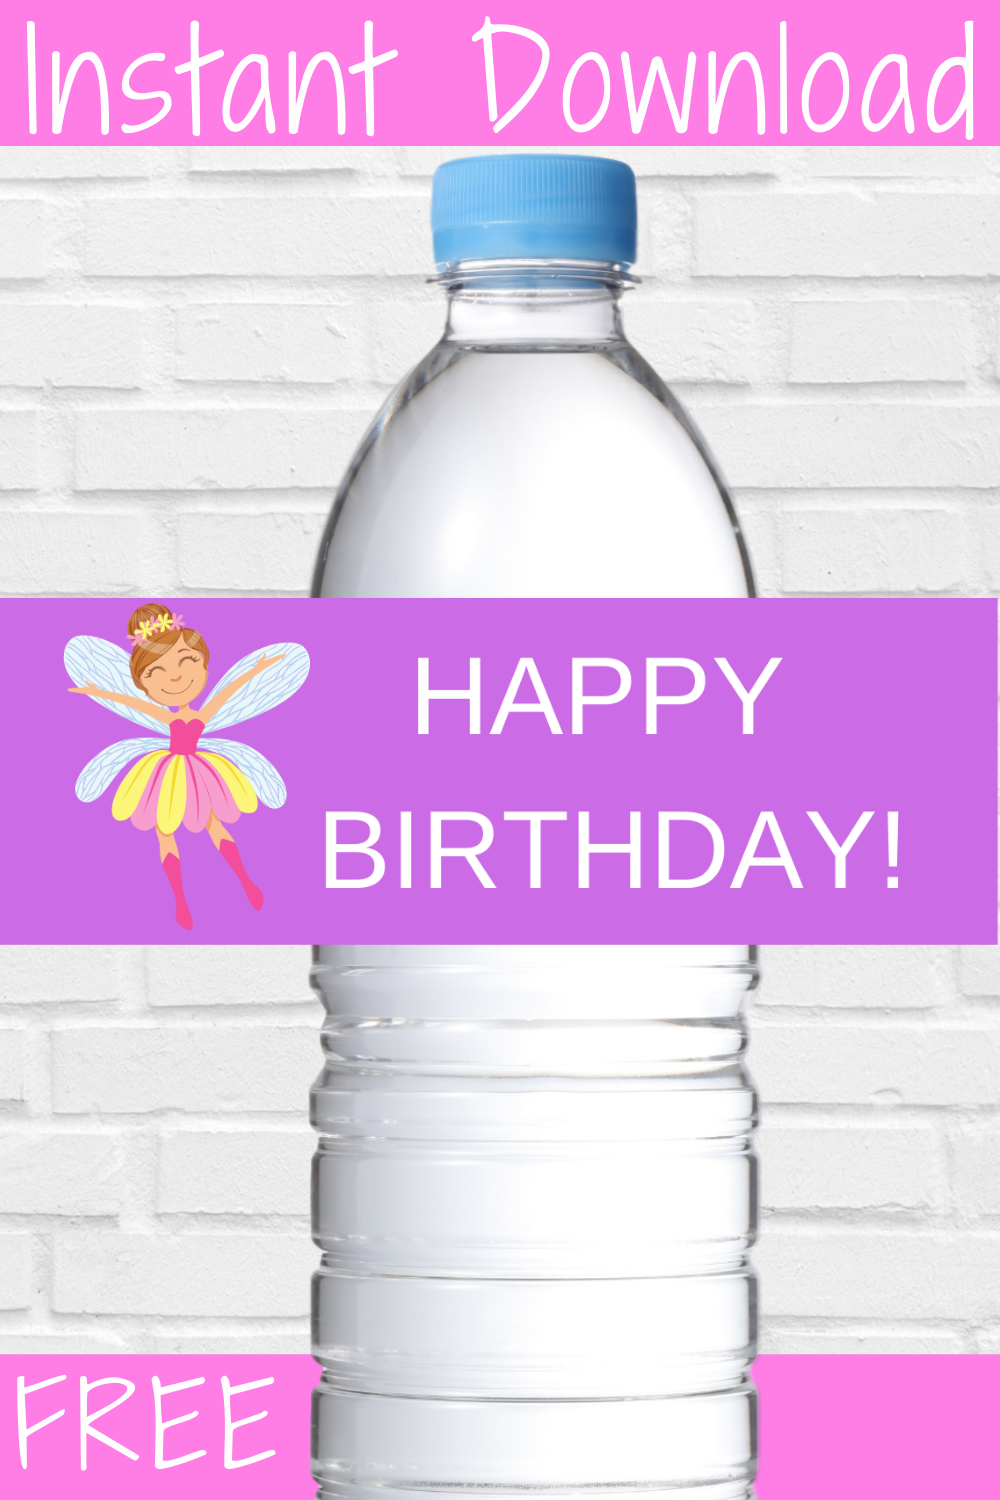 free download: fairy garden water bottle wrapper for birthday party